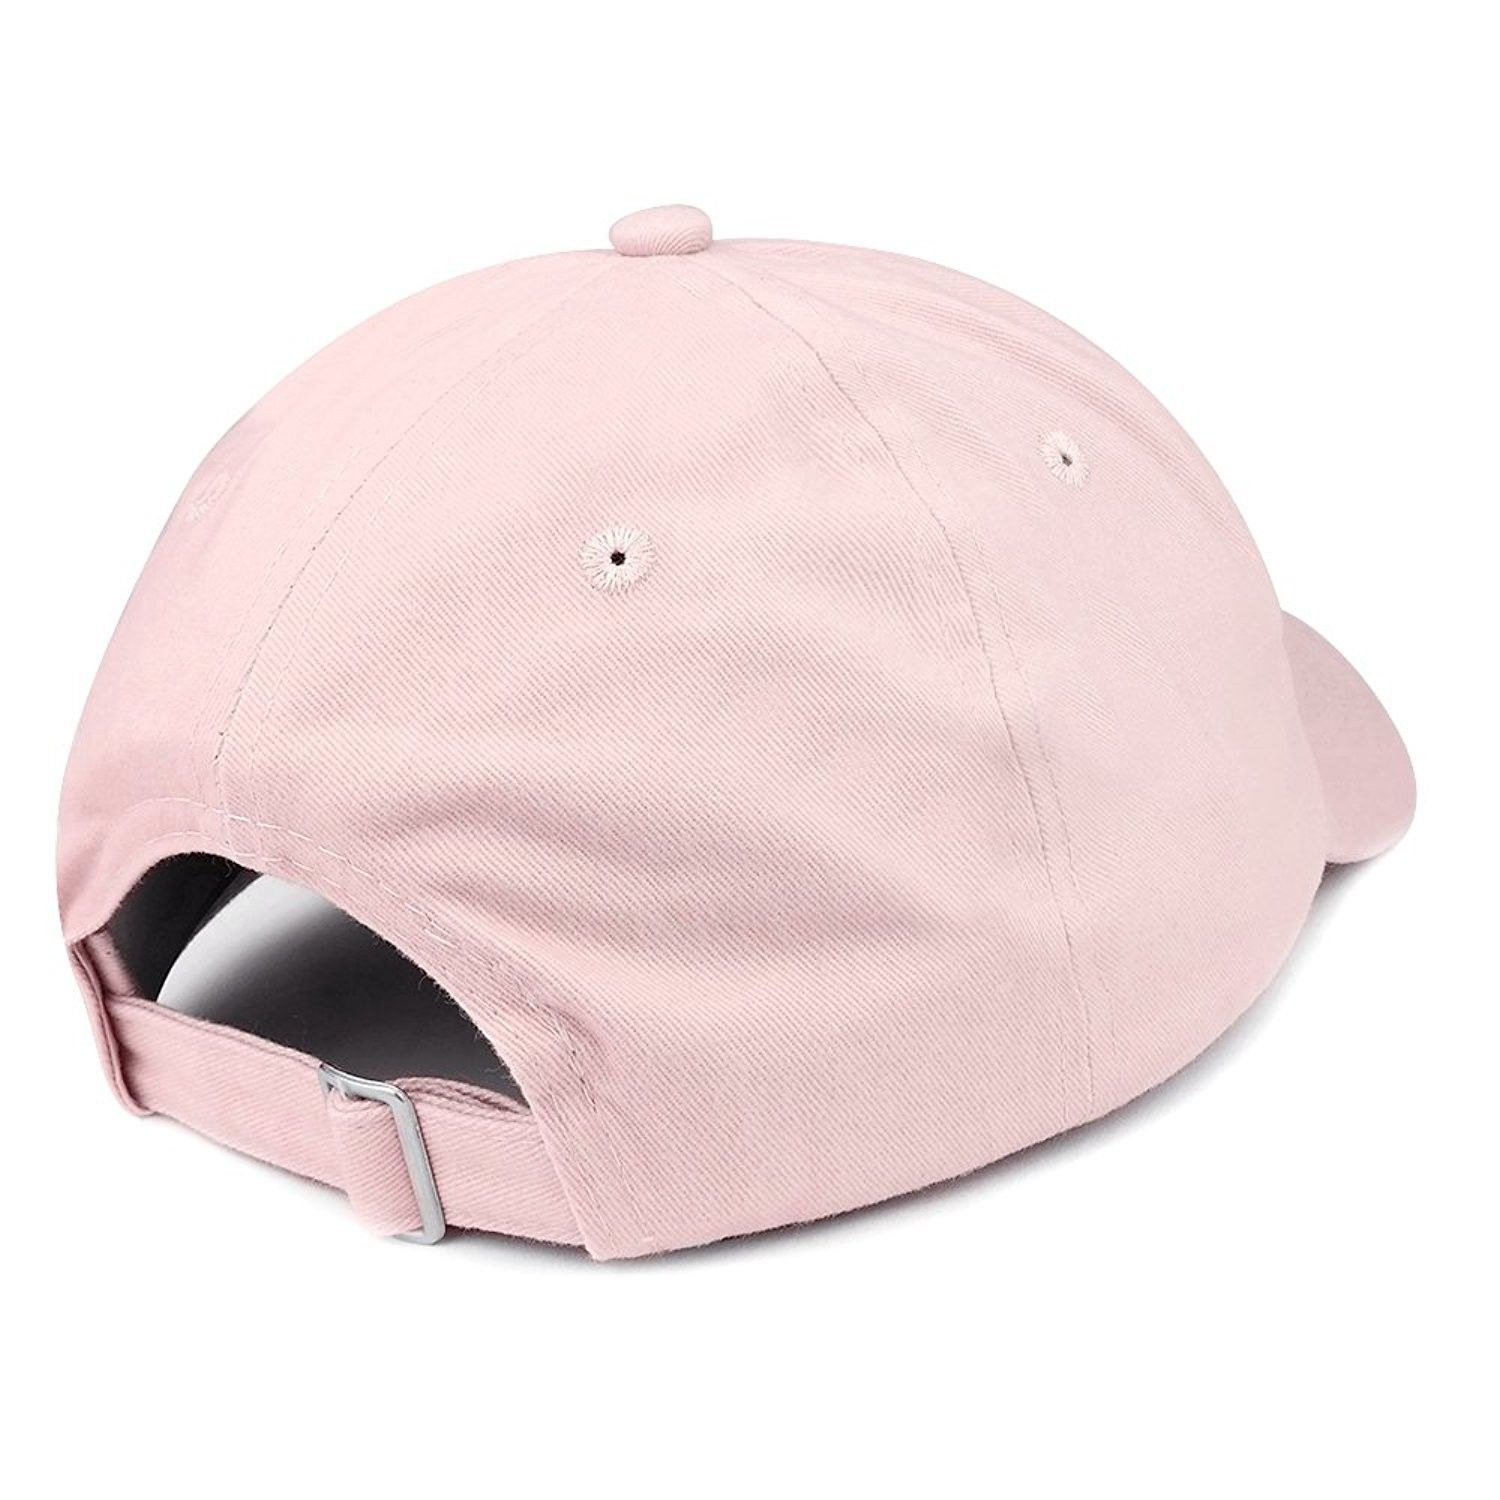 7677db6333873 WTF America Embroidered 100% Quality Brushed Cotton Baseball Cap - Light  Pink - C9185HOL5D4  Hats  Baseball Caps